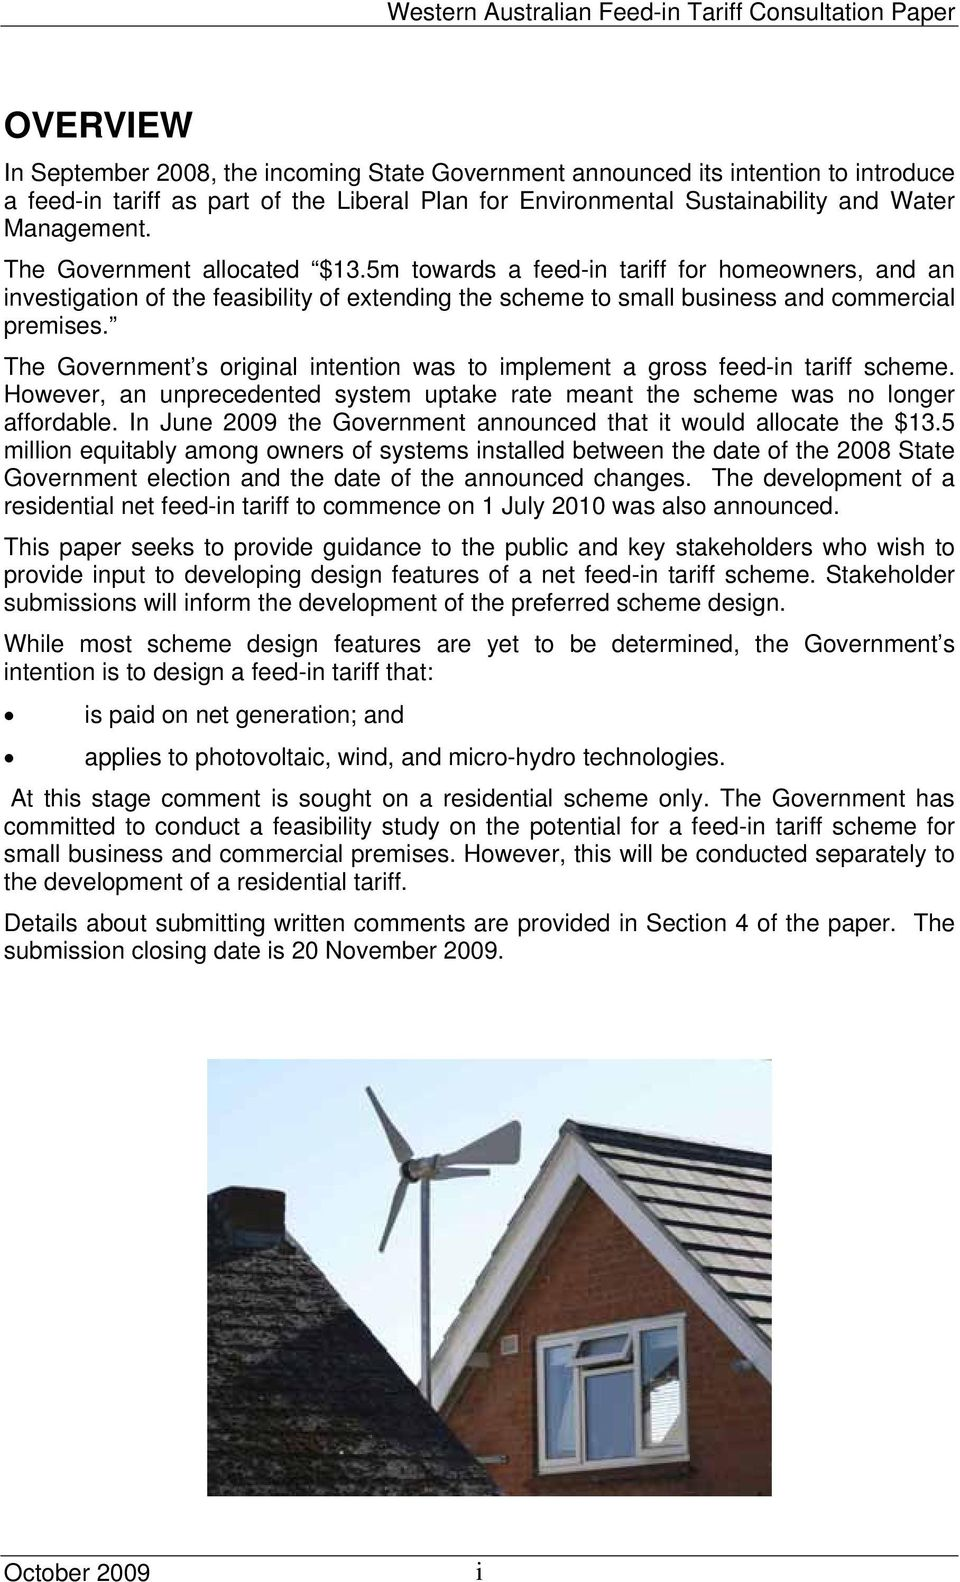 The Government s original intention was to implement a gross feed-in tariff scheme. However, an unprecedented system uptake rate meant the scheme was no longer affordable.